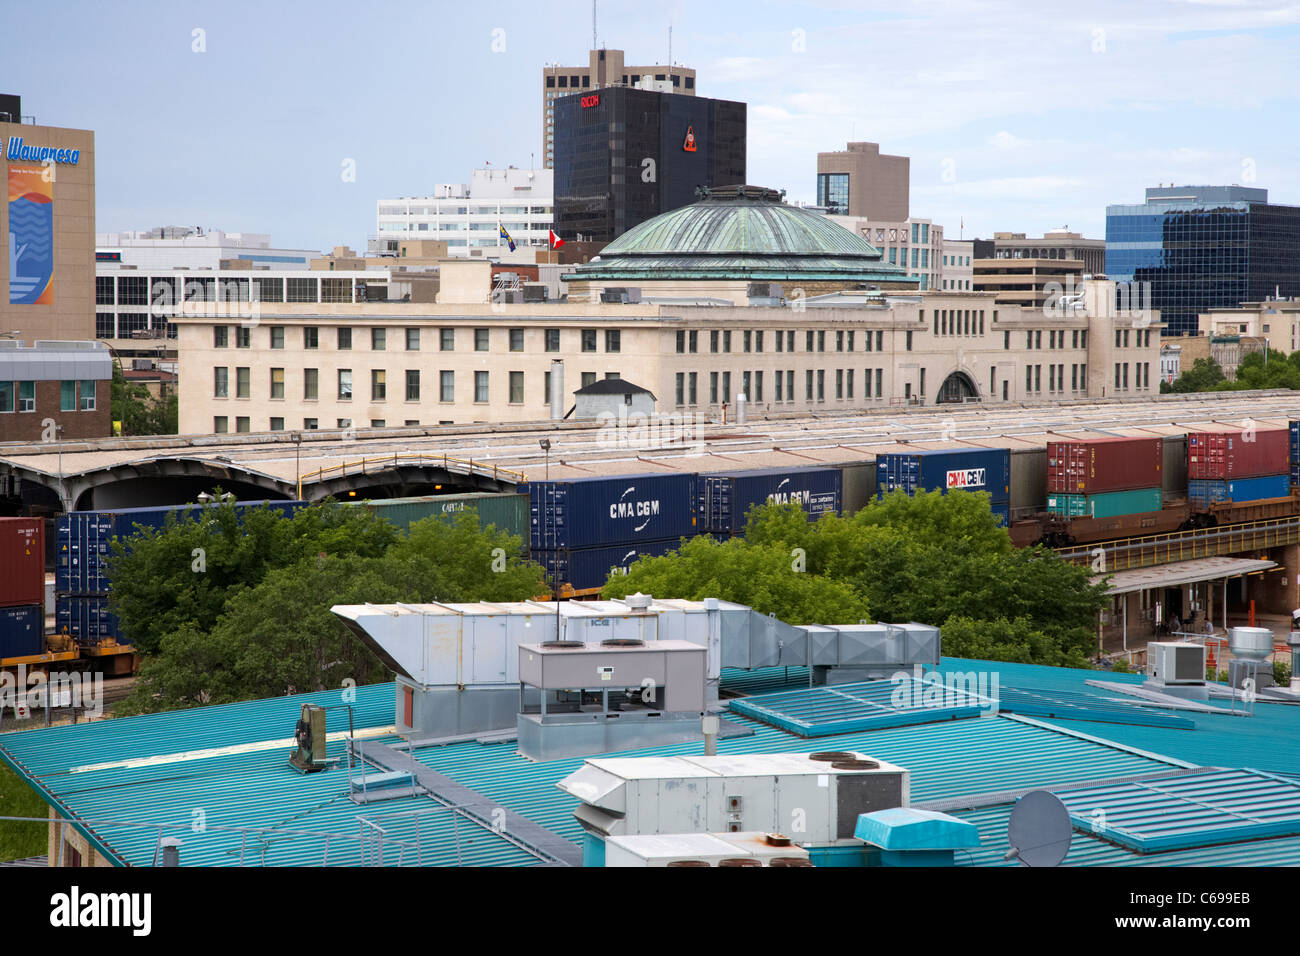 view of rear of union station and railway lines from the forks Winnipeg Manitoba Canada - Stock Image